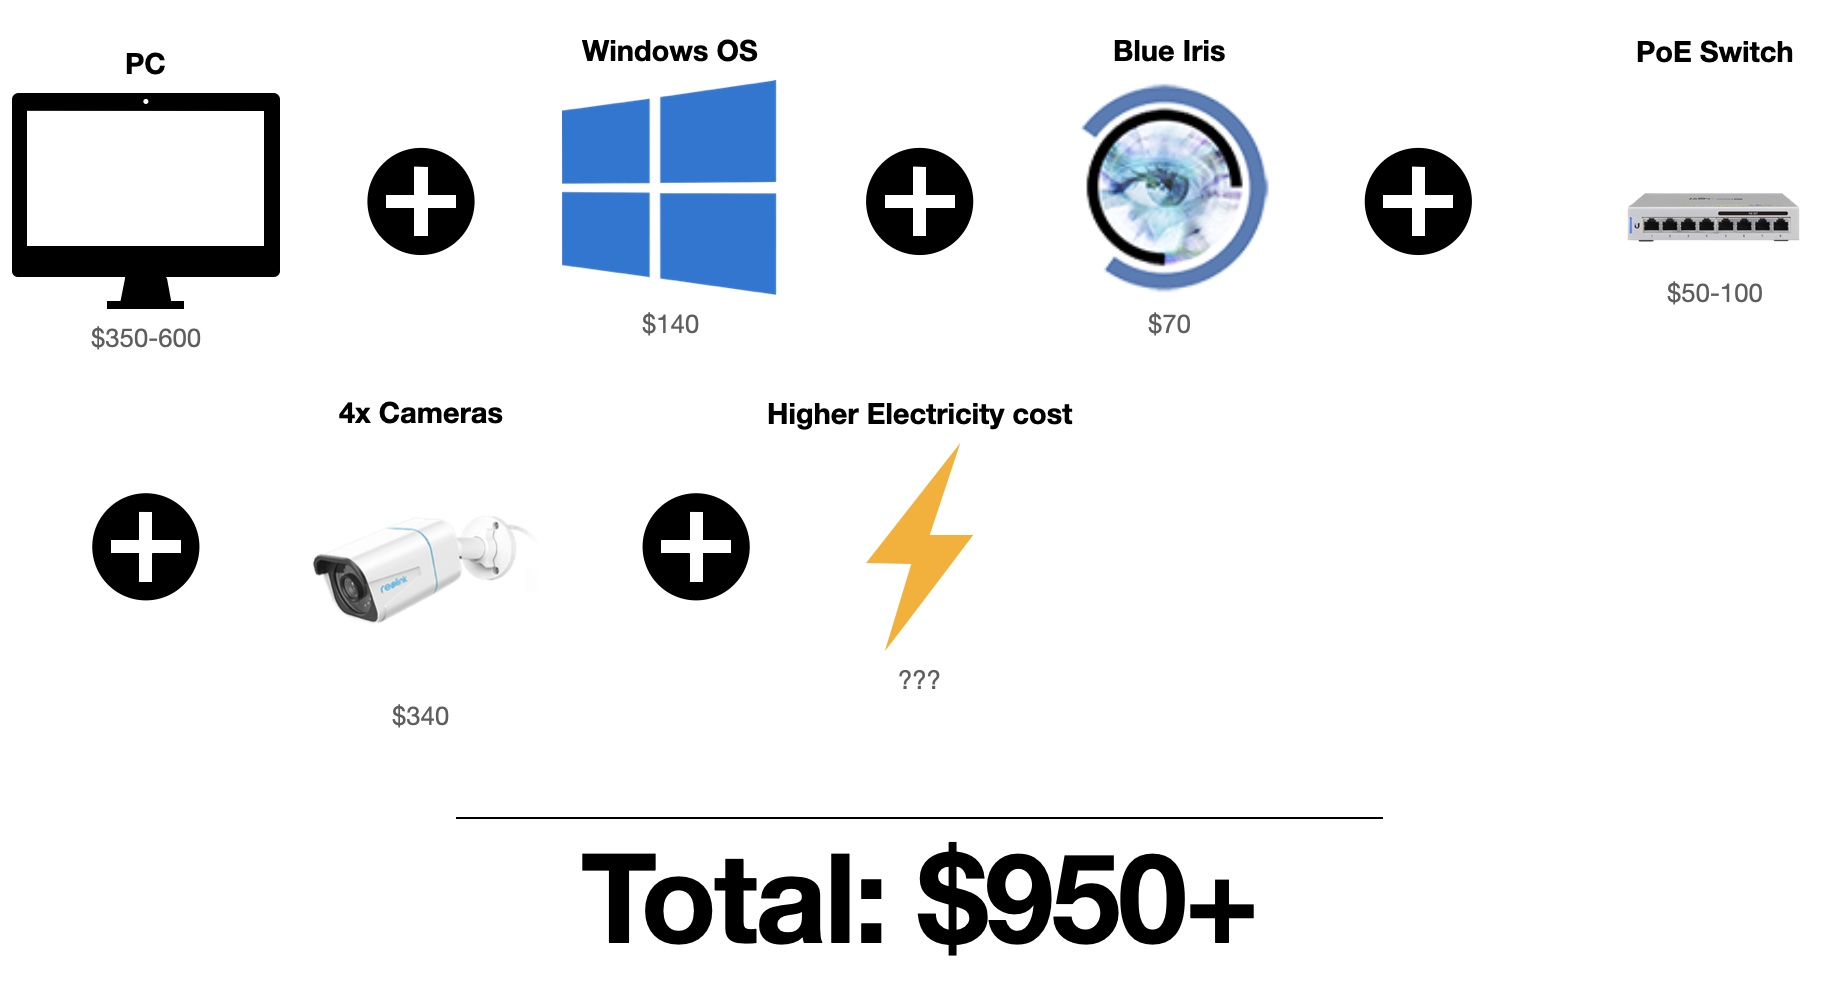 Required components and their approximate price for a Blue Iris based system.